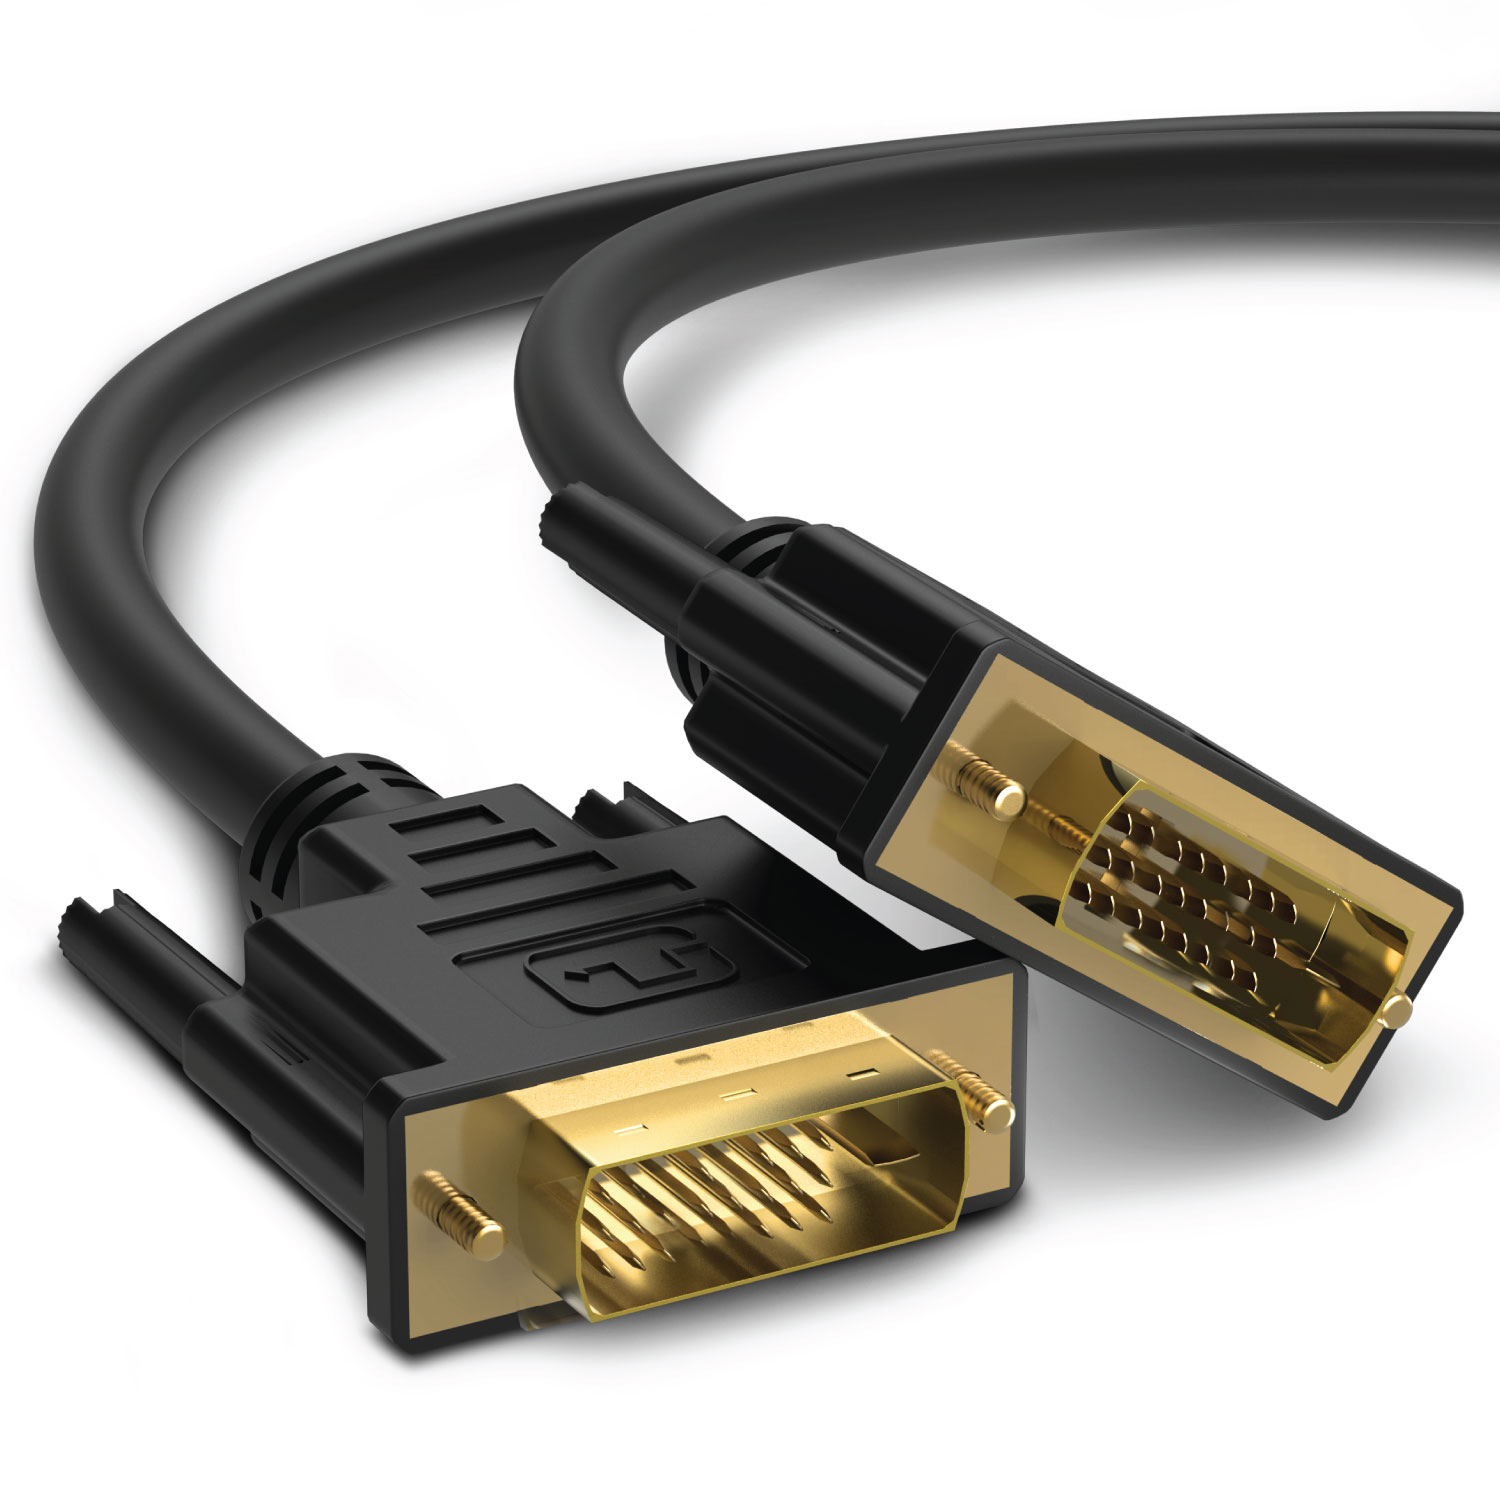 Fosmon Gold Plated DVI-D Digital Dual Link Video Cable for PC Computer Monitors HDTV Projectors - 6 FT / 1.8 M